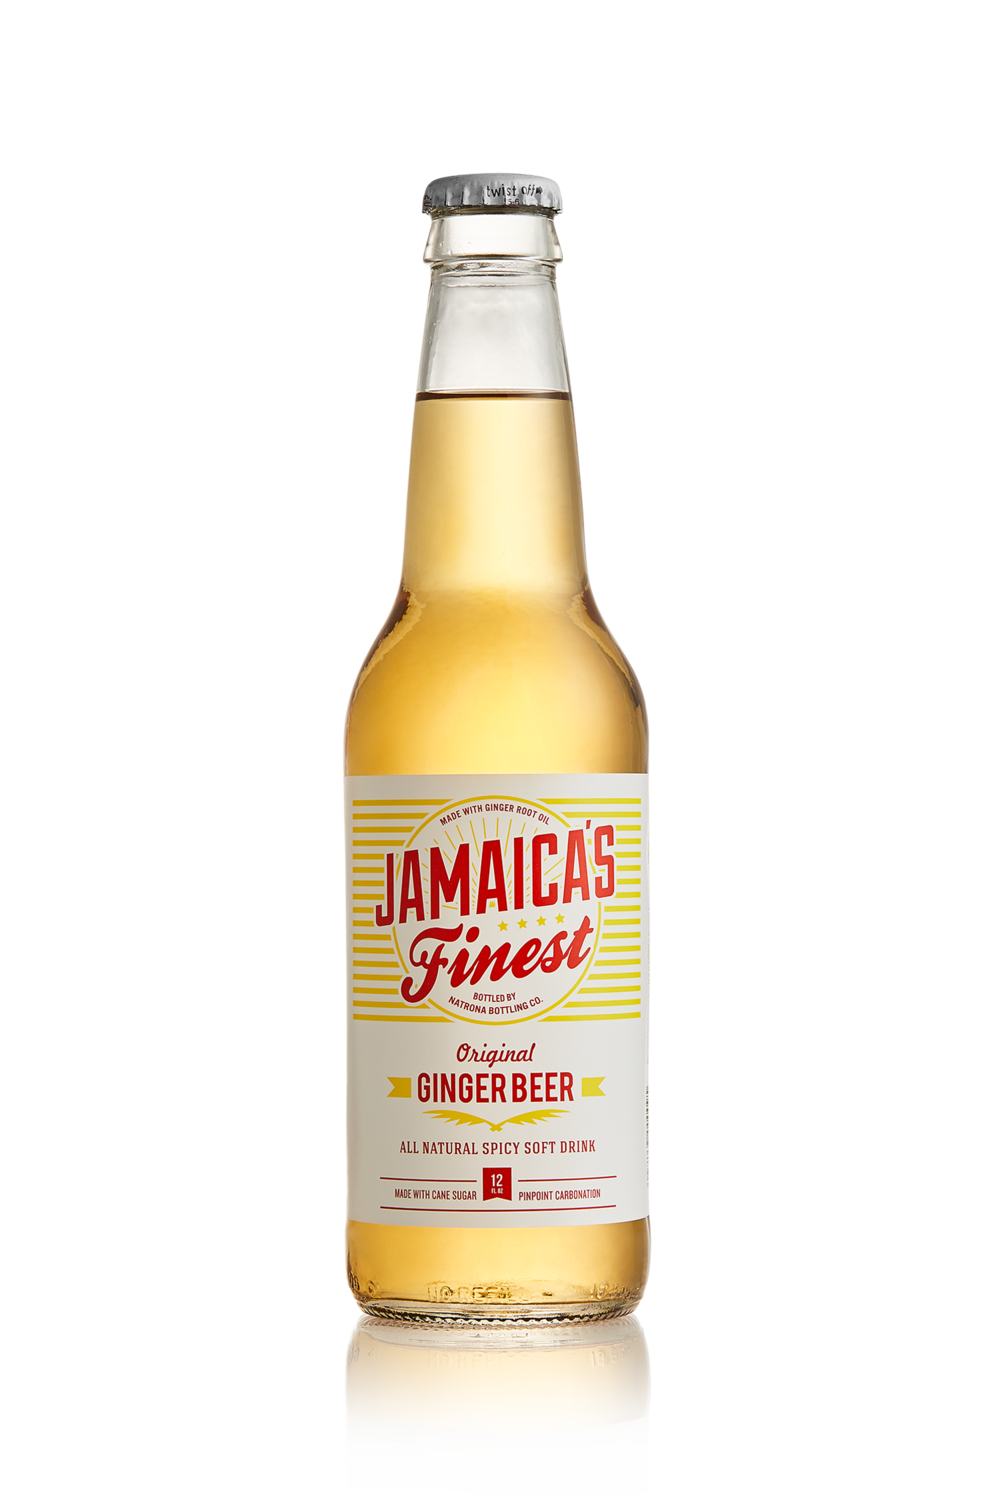 Jamaicas Finest Original Ginger Beer